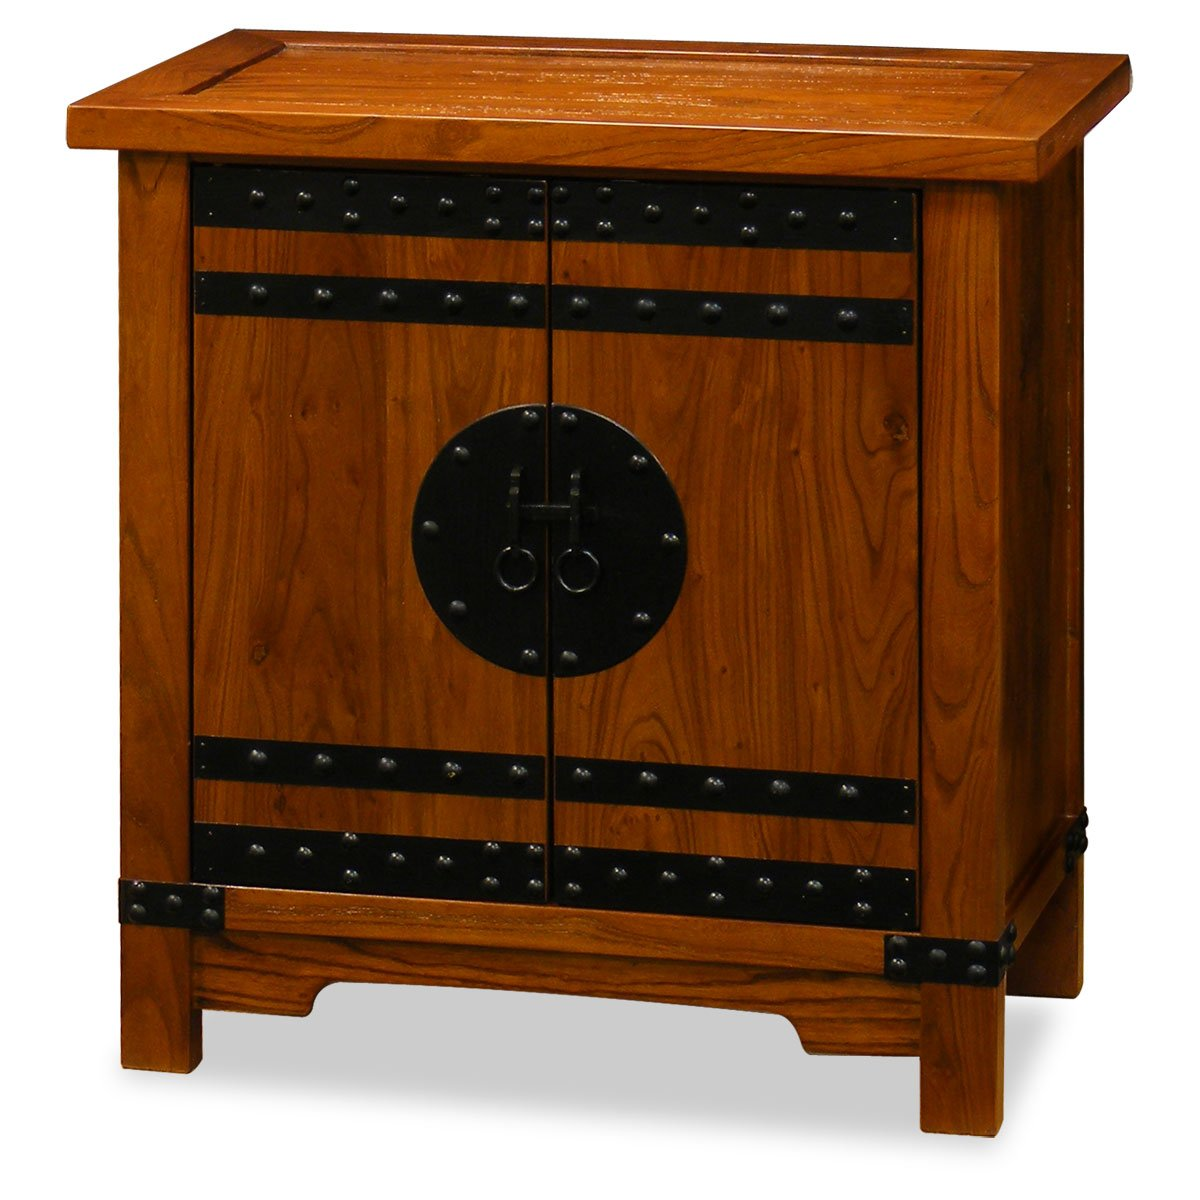 China Furniture Online Elmwood Cabinet, Northern Chinese Style Cabinet Natural Finish 0